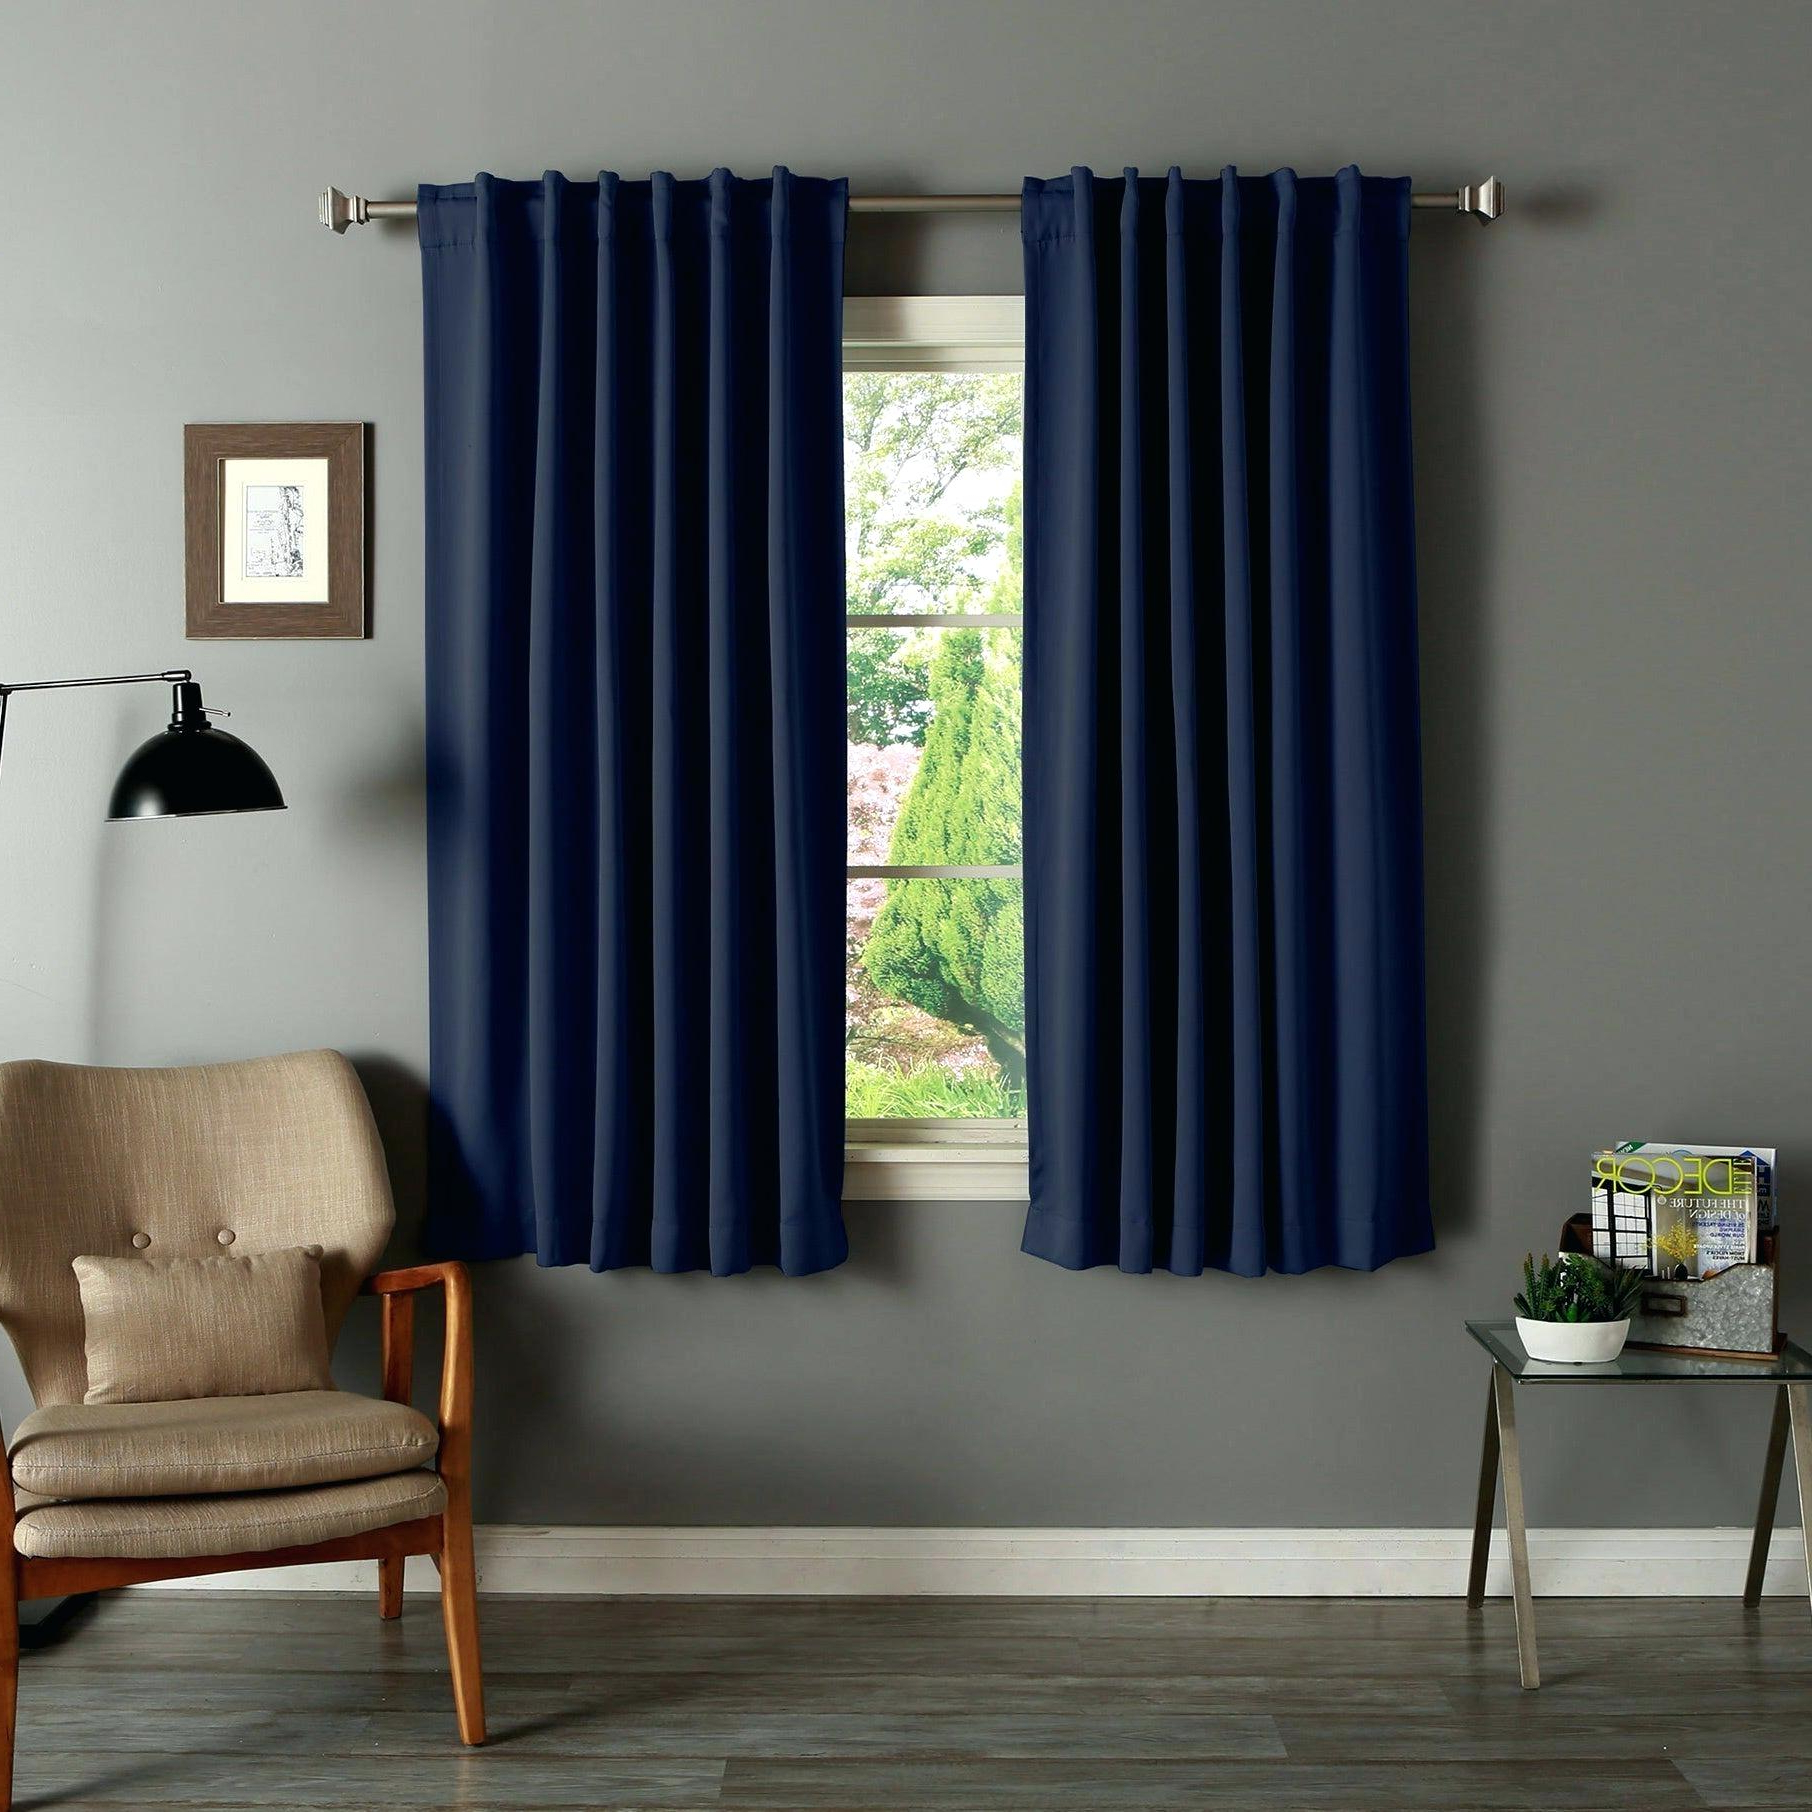 Insulated Cotton Curtain Panel Pairs Throughout Most Popular Aurora Home Solid Insulated Thermal Inch Blackout Curtain (View 12 of 20)